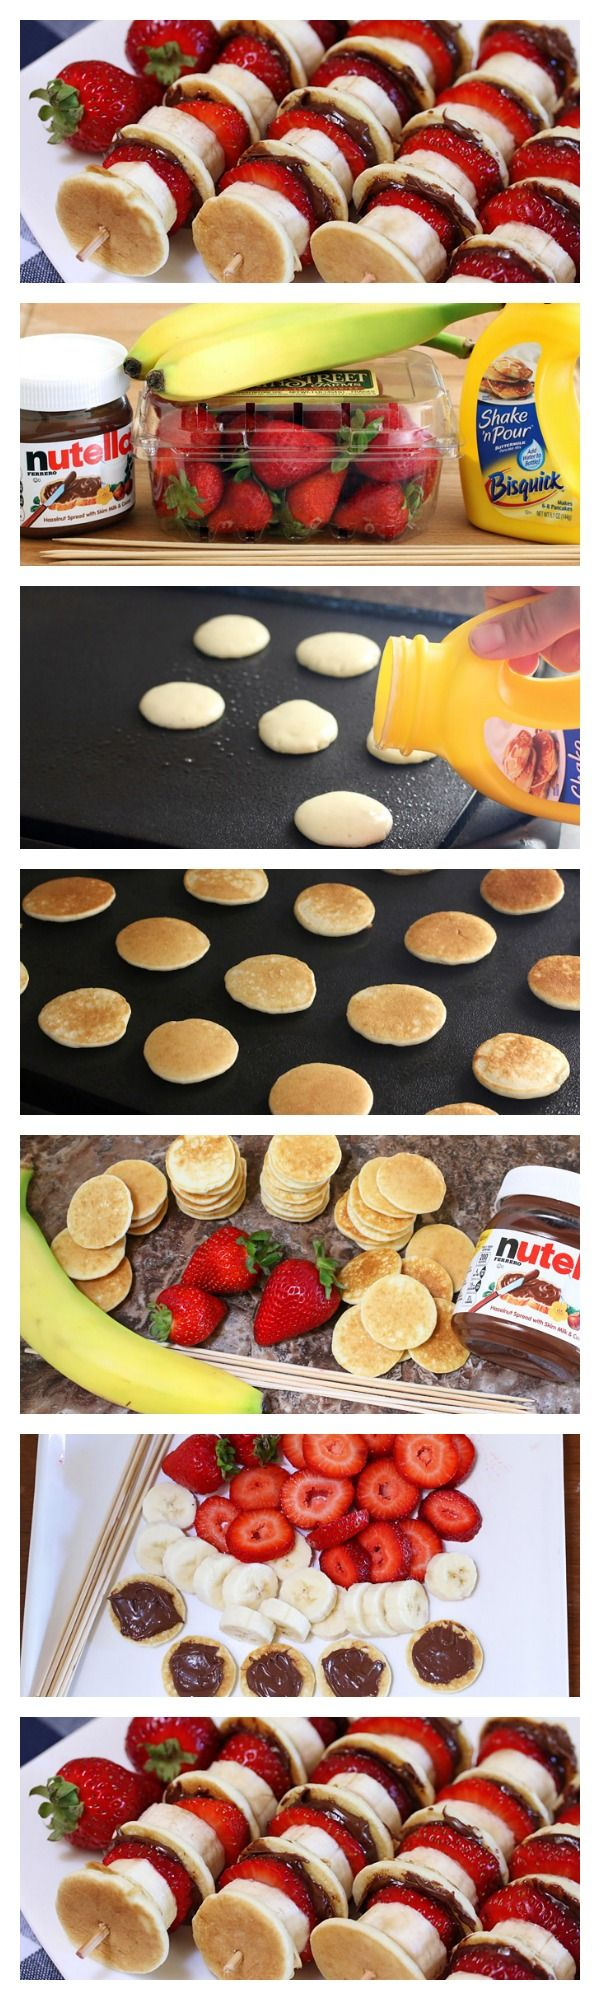 Breakfast skewers. So cute!! Would love to do this Christmas morning :)